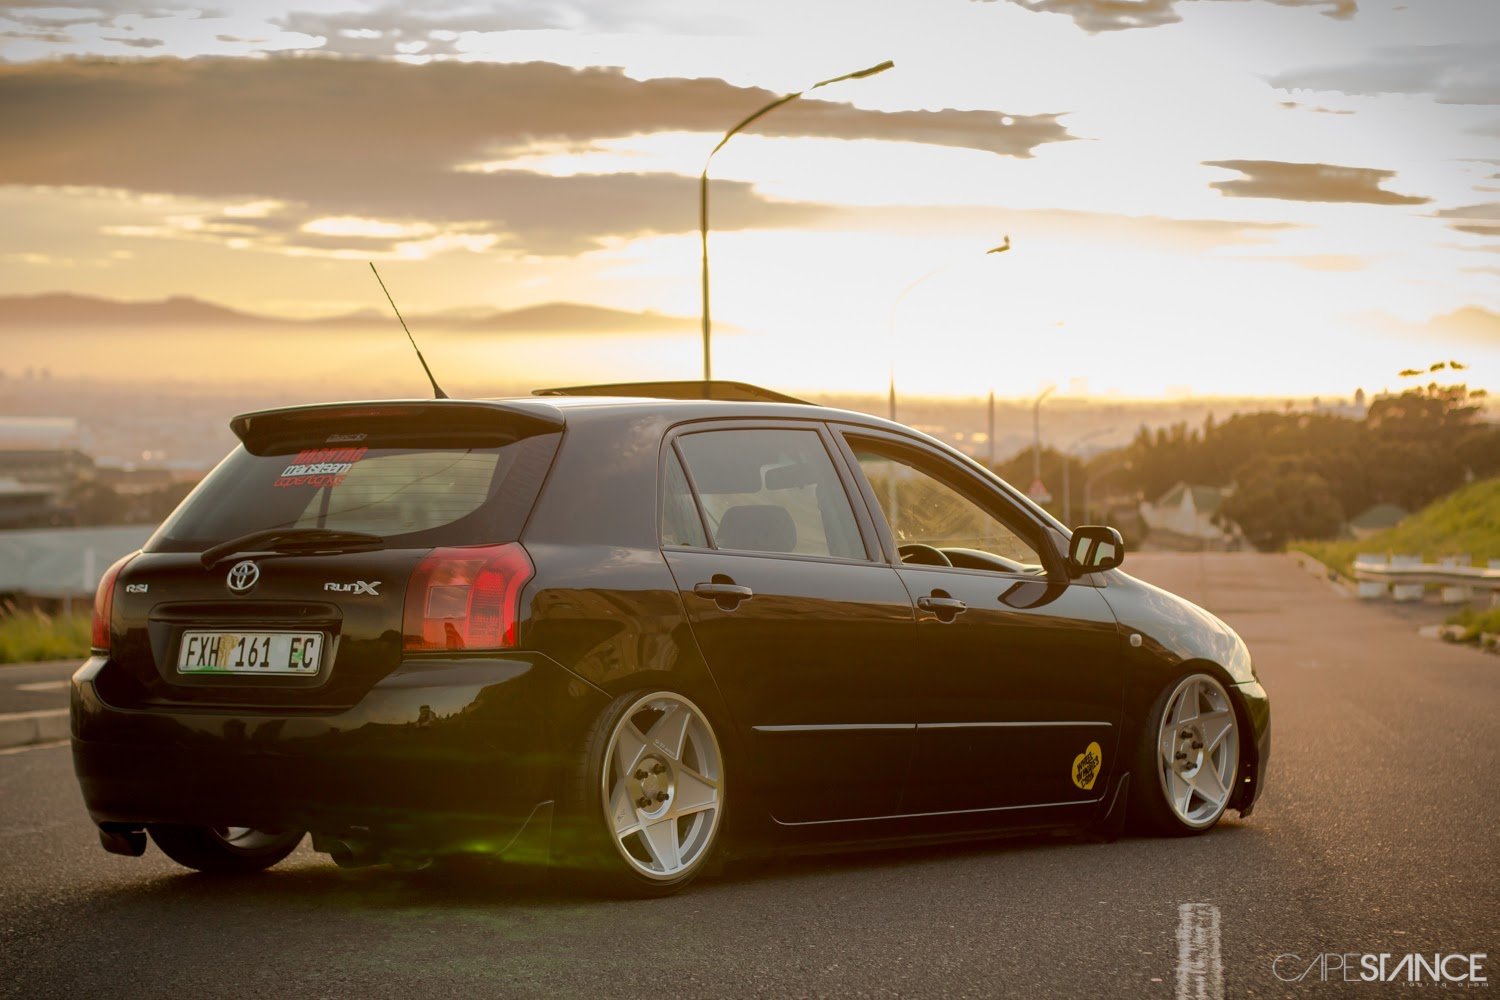 Cape Stance Nithaam Fakier S Bagged Toyota Runx